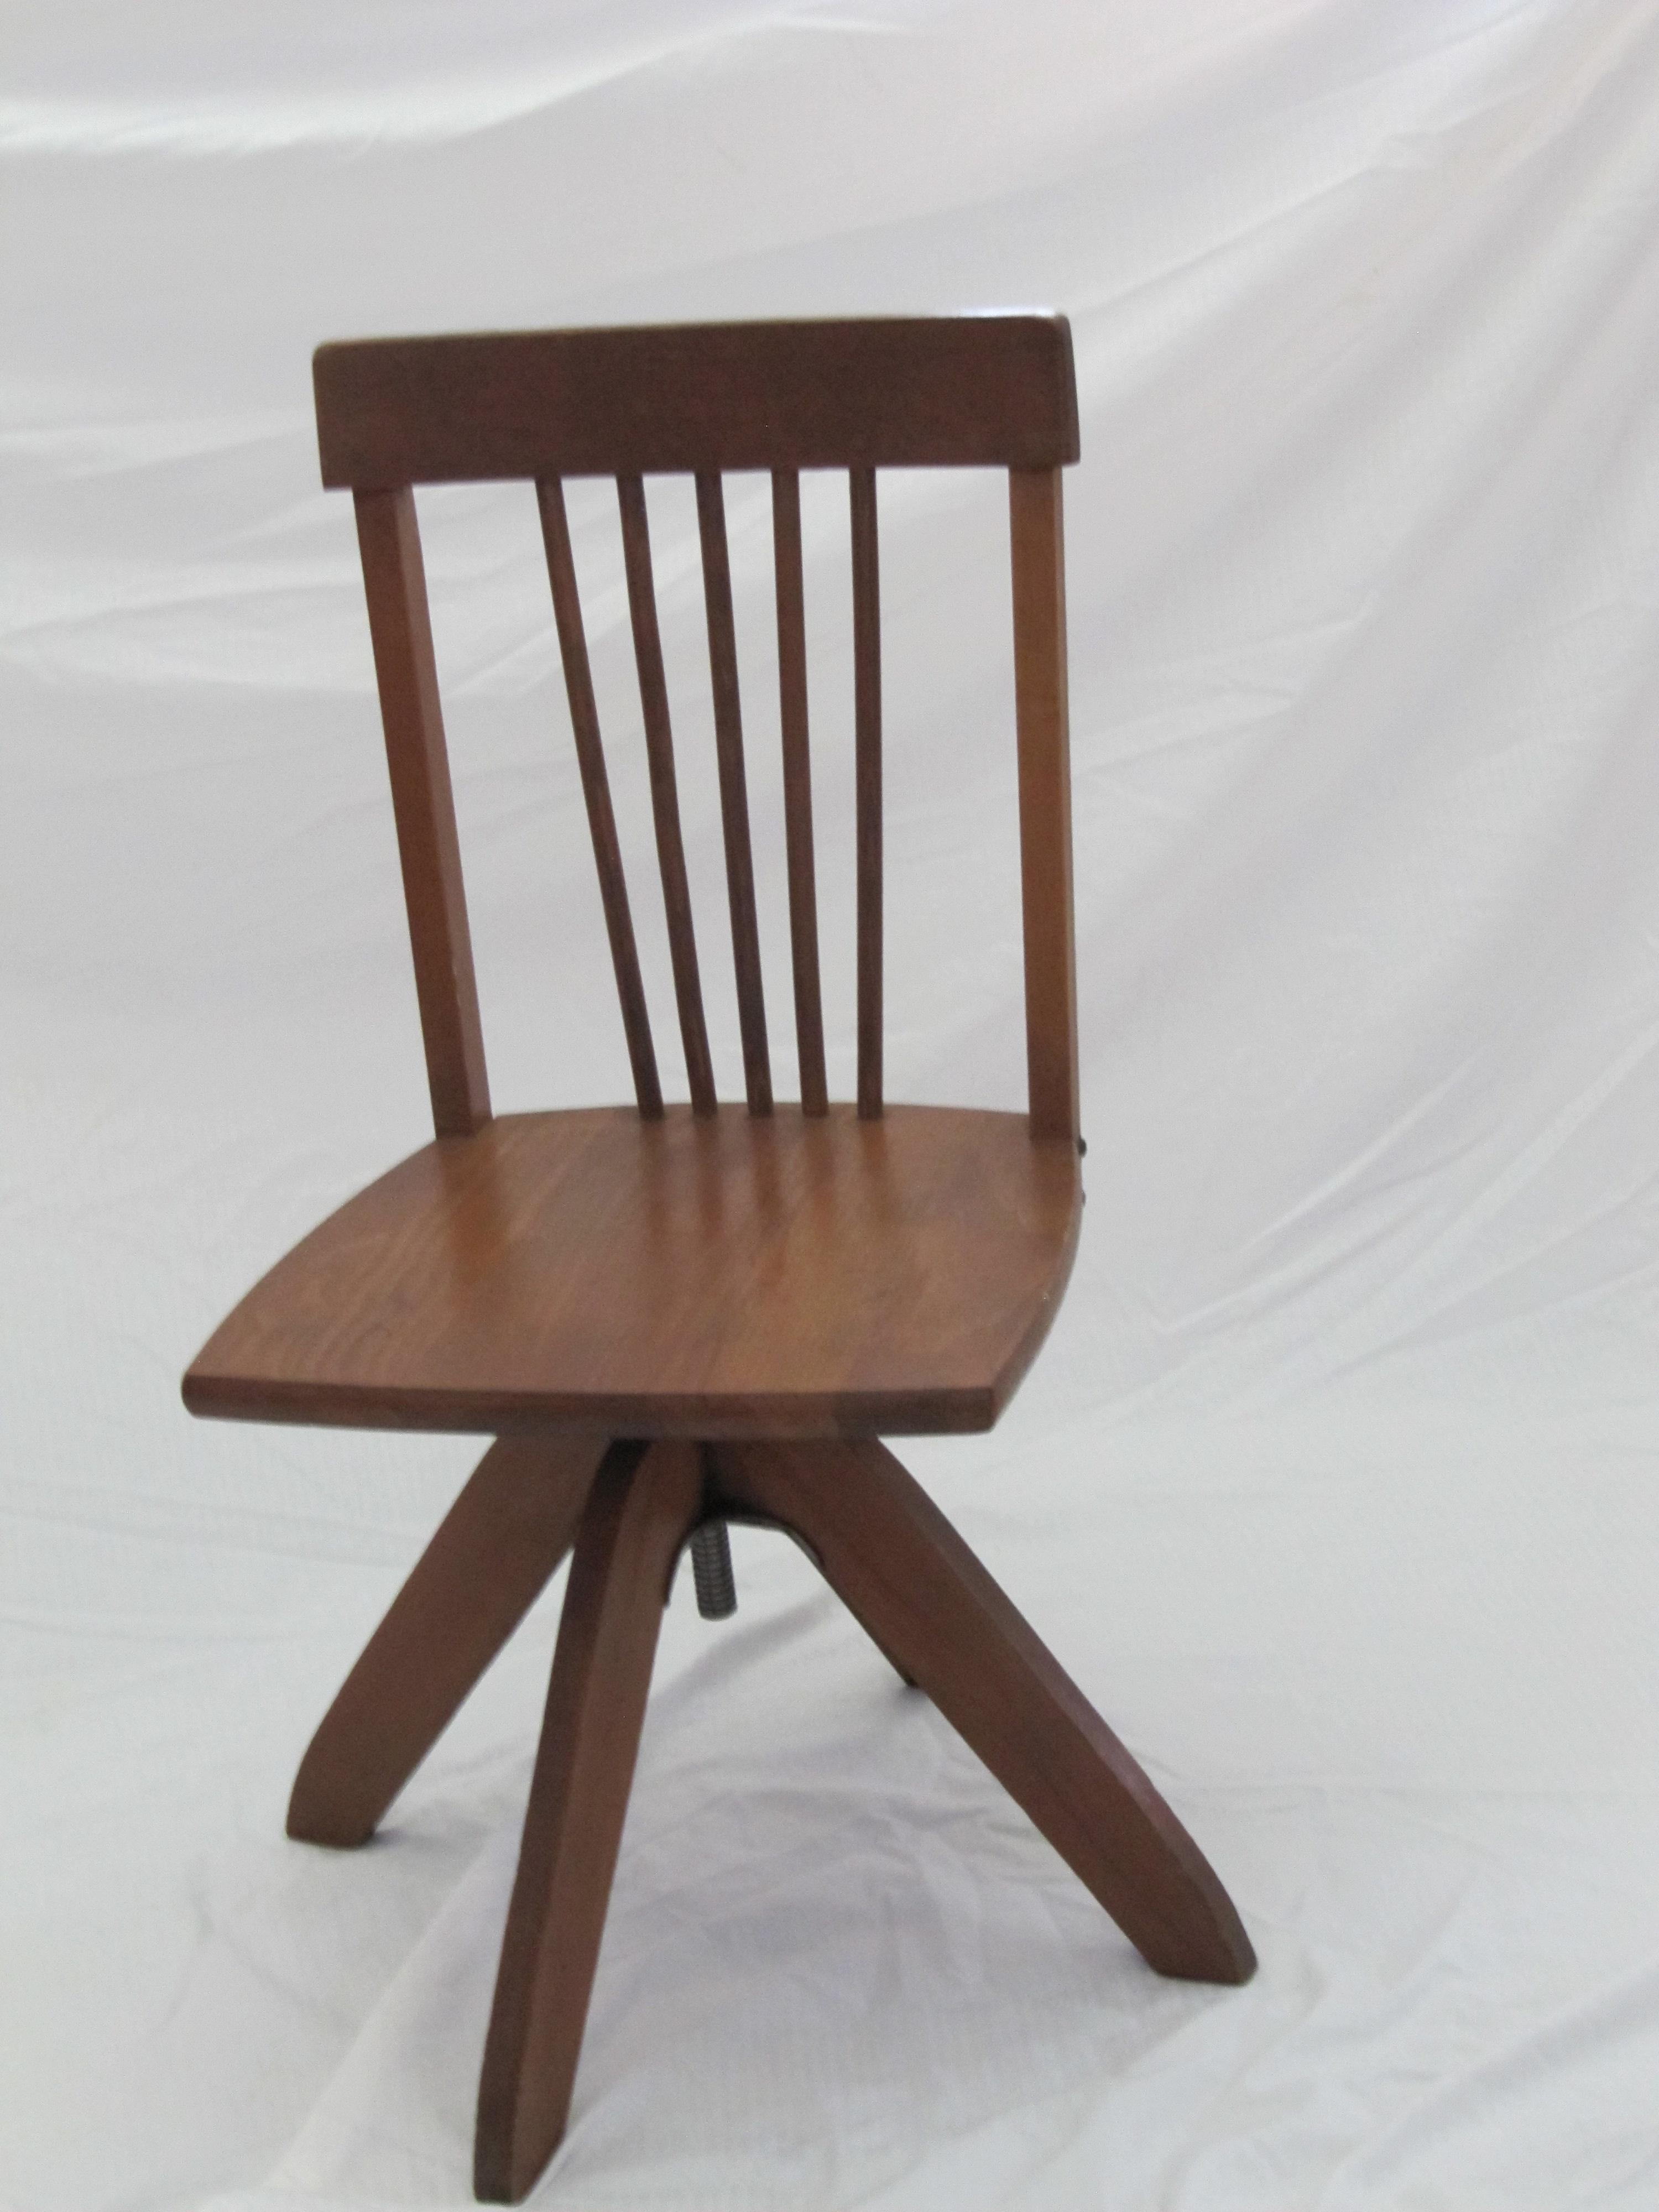 Offered Is A Vintage Childrenu0027s Wood Swivel Desk Chair. Excellent Condition  For Its Age,